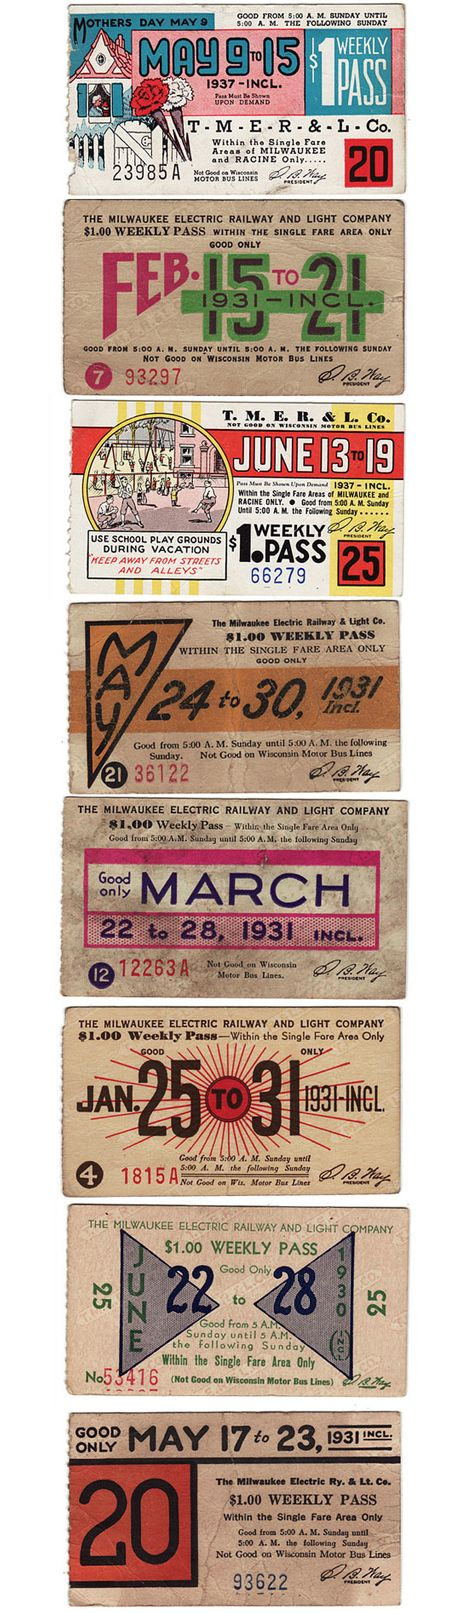 Bus Tickets. For @Rick Landers